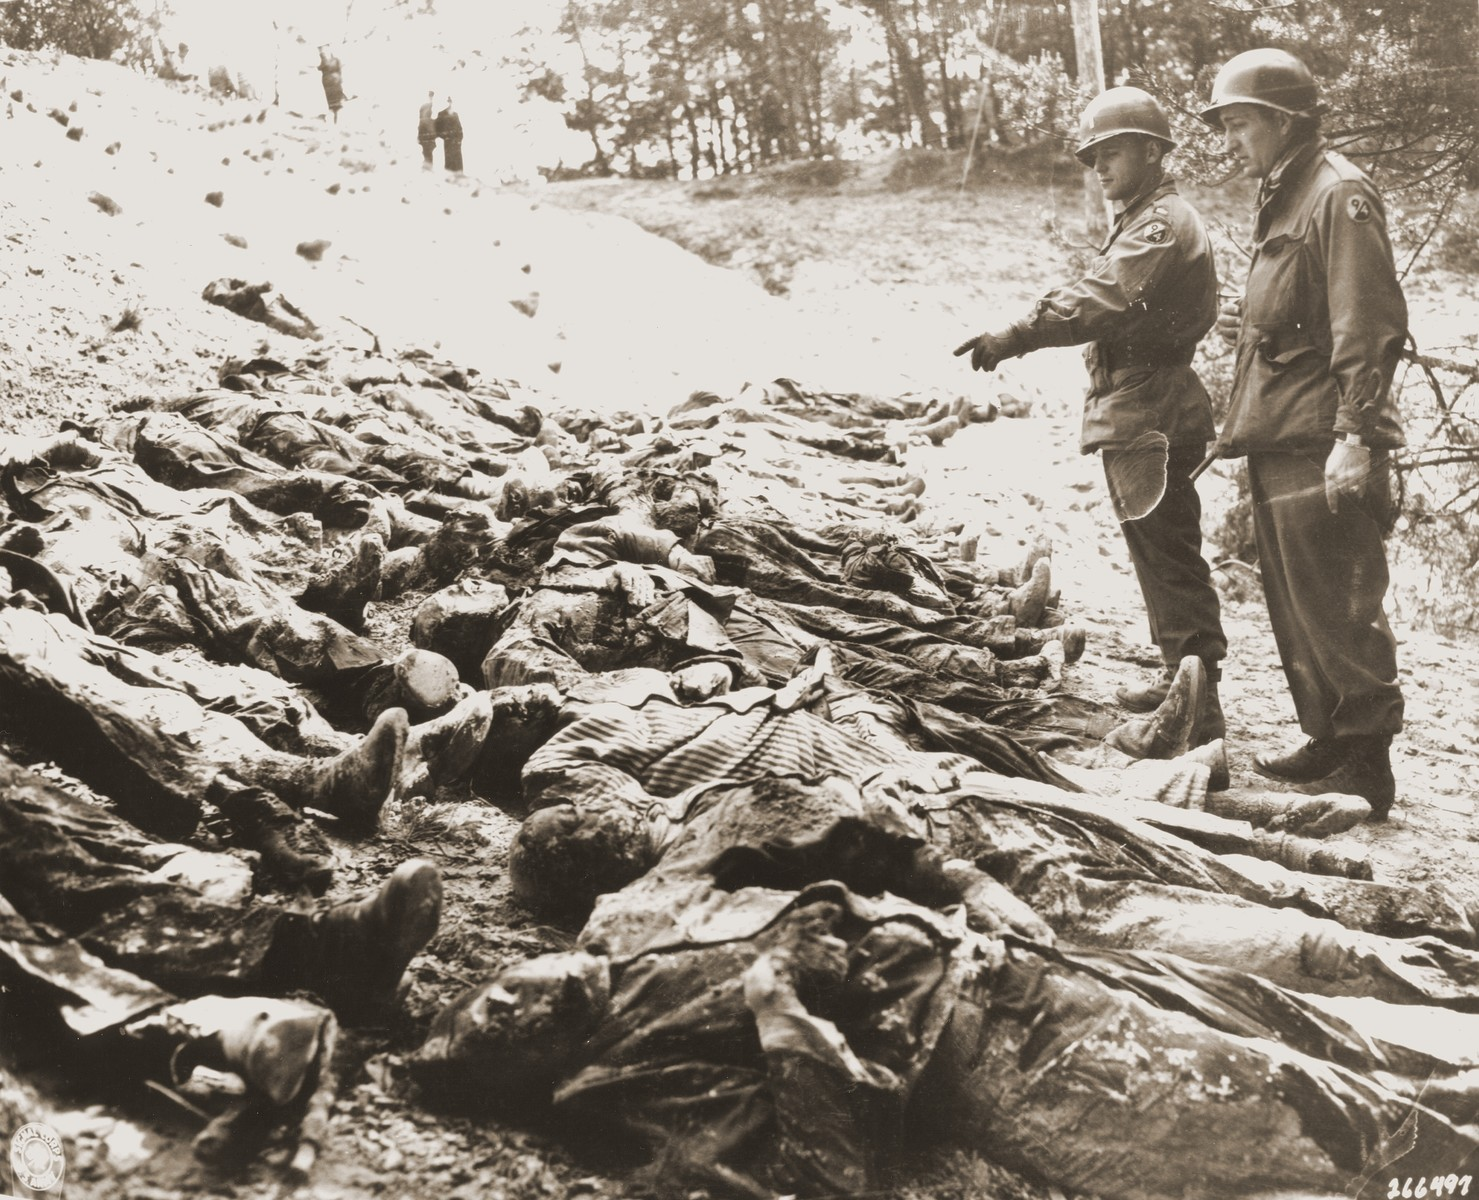 Two American officers with the 94th Division count the bodies of 71 political prisoners exhumed from a mass grave on Wenzelnberg near Solingen-Ohligs.  The victims, most of whom were taken from Luettringhausen prison, were shot and buried by the Gestapo following orders to eliminate all Reich enemies just before the end of the war.